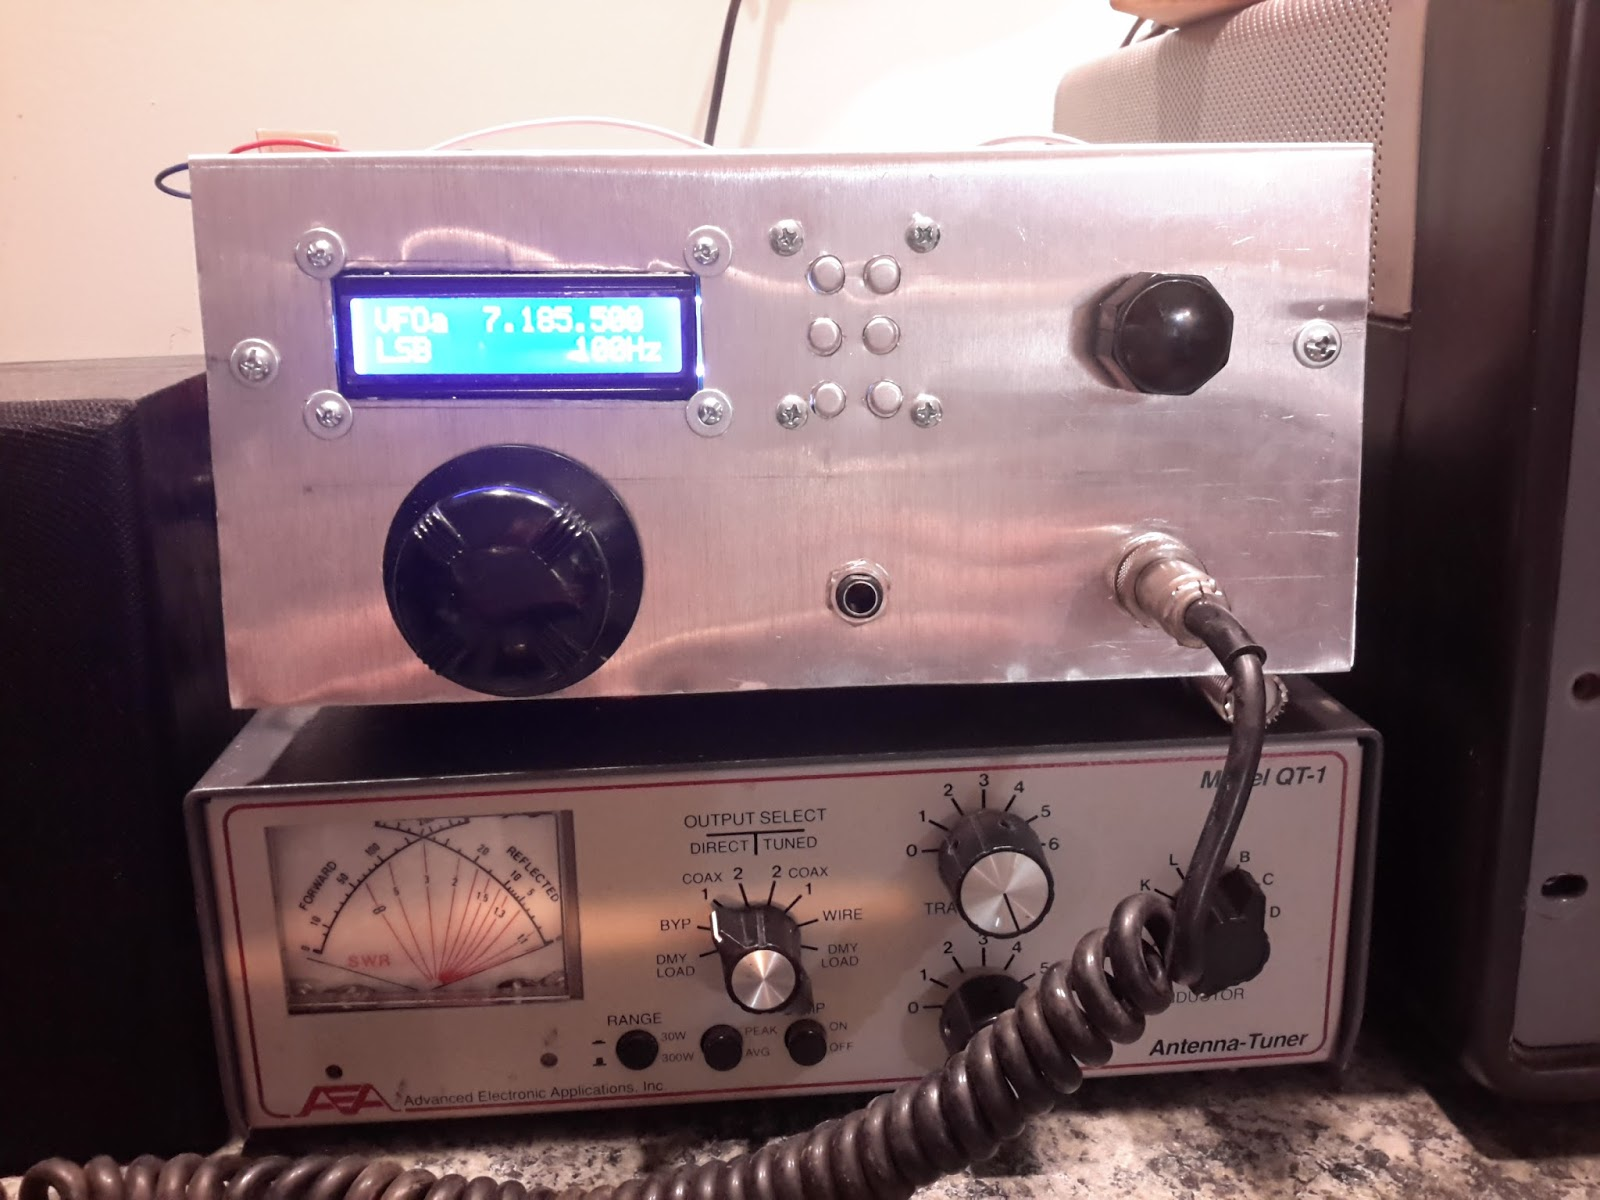 Steves Eclectic Radio Blog 2016 Lm380 25 Watt Amplifier This Little Rig Uses Two Bilateral Termination Sensitive Blocks For The If Stages Homebrew Diode Ring Mixers Mixer And Product Detector